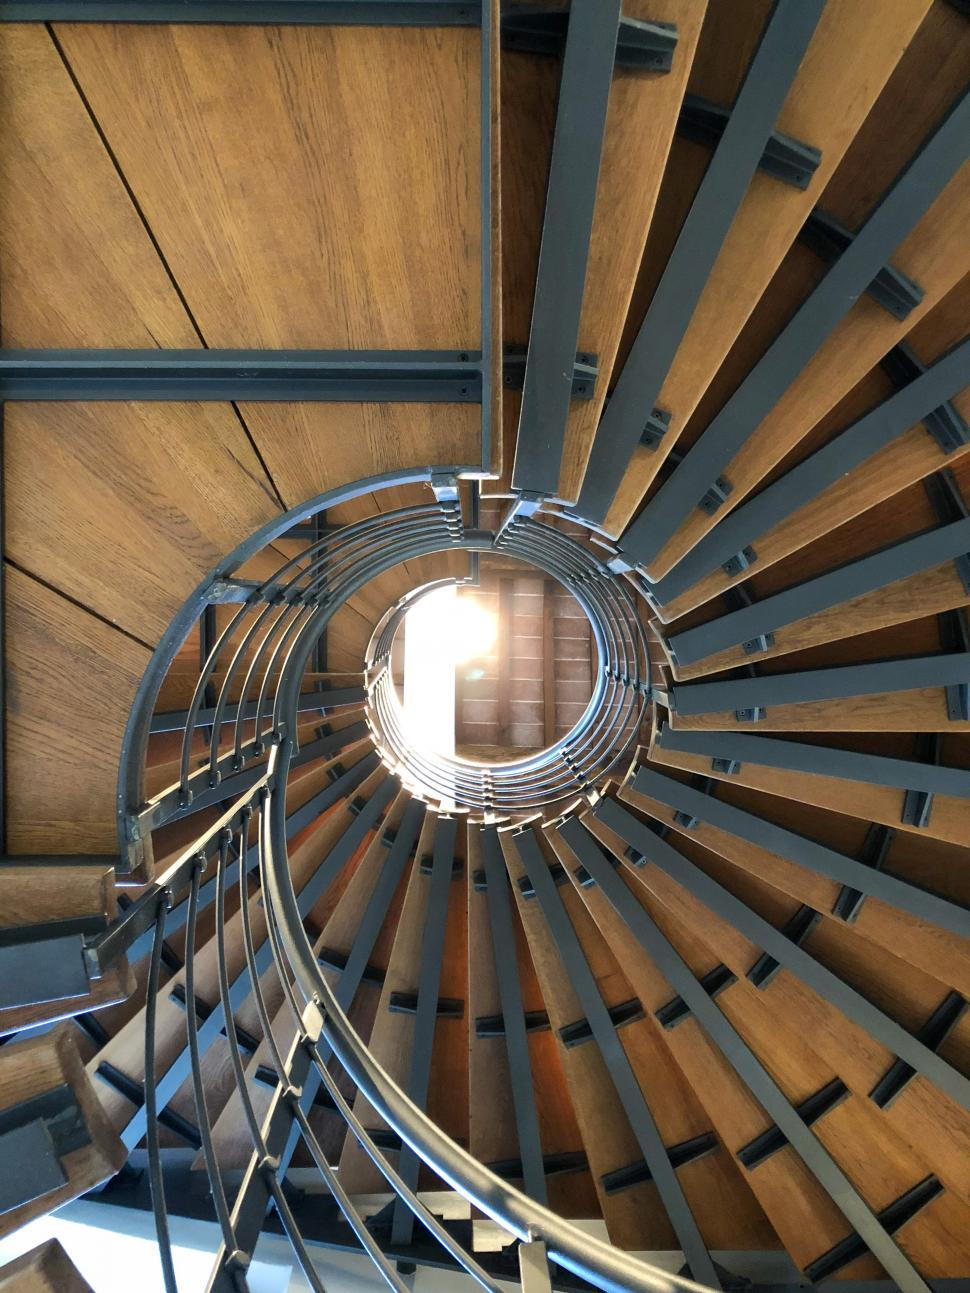 Download Free Stock Photo of Spiral Staircase